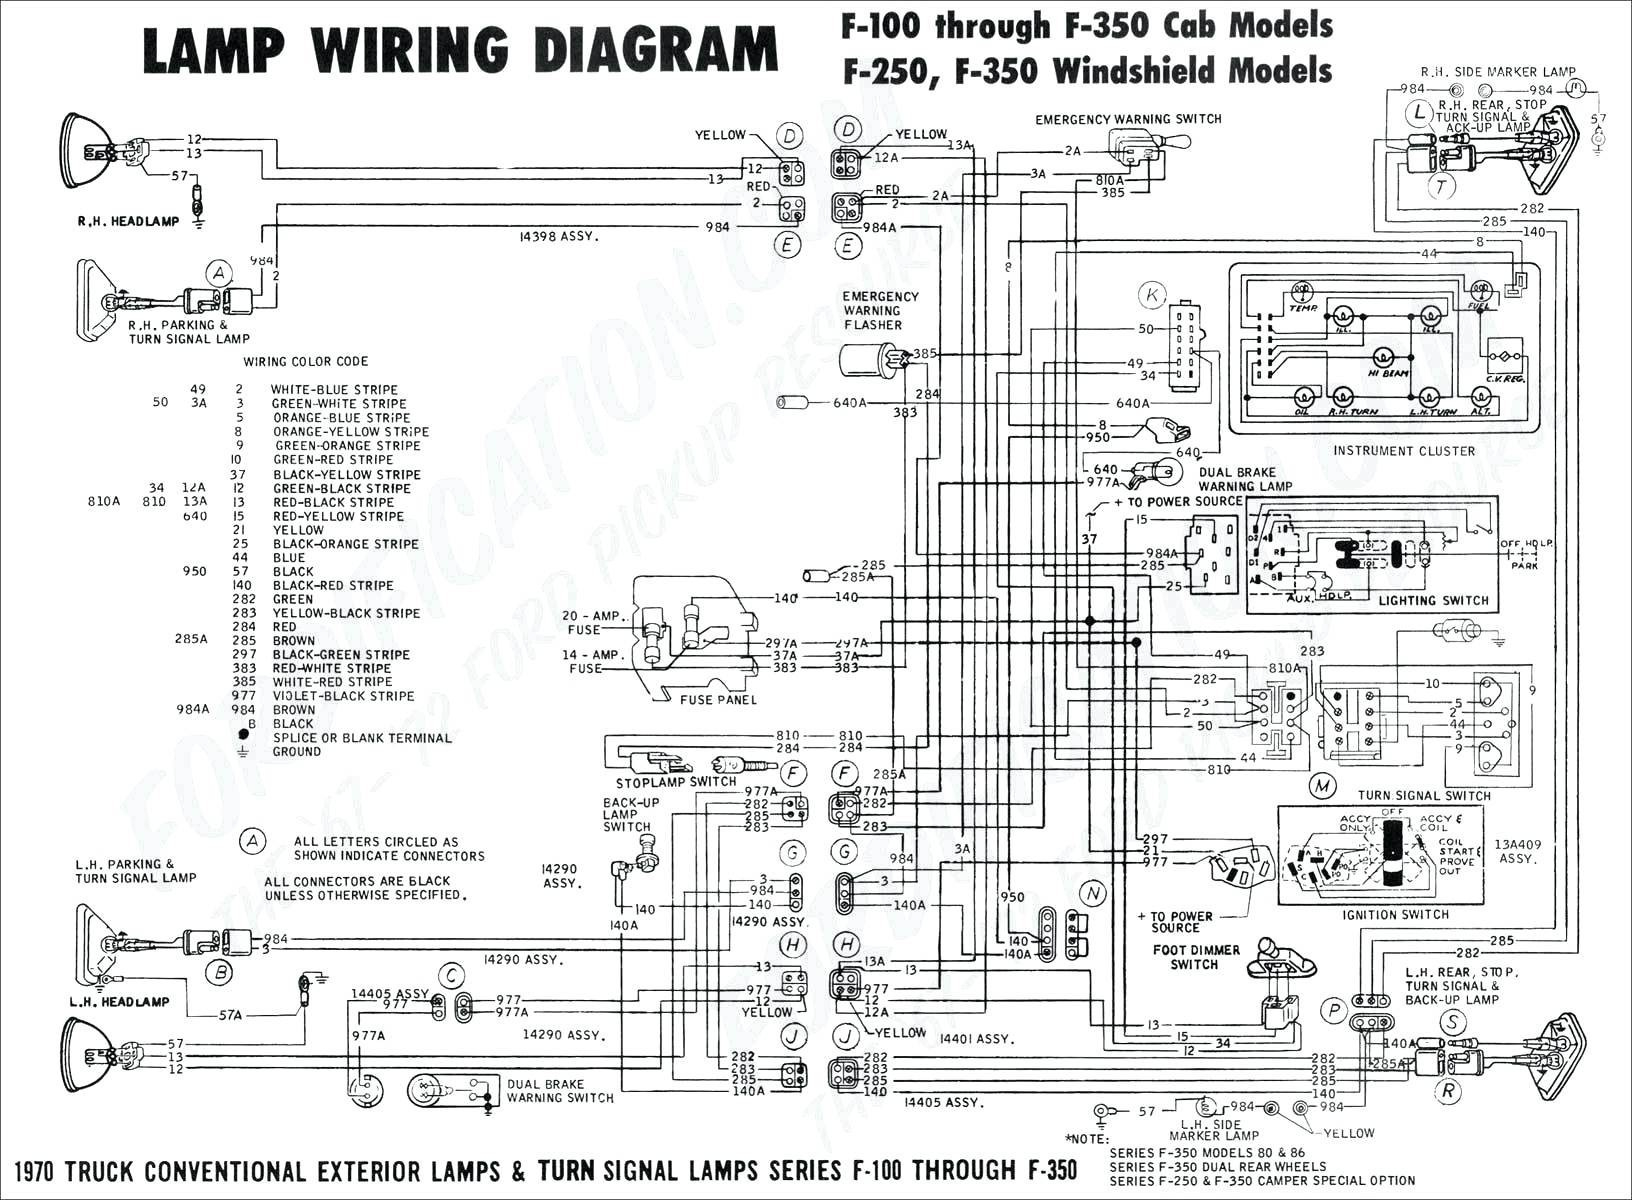 2004 Western Star Engine Firewall Diagram - Wiring Diagram Read on